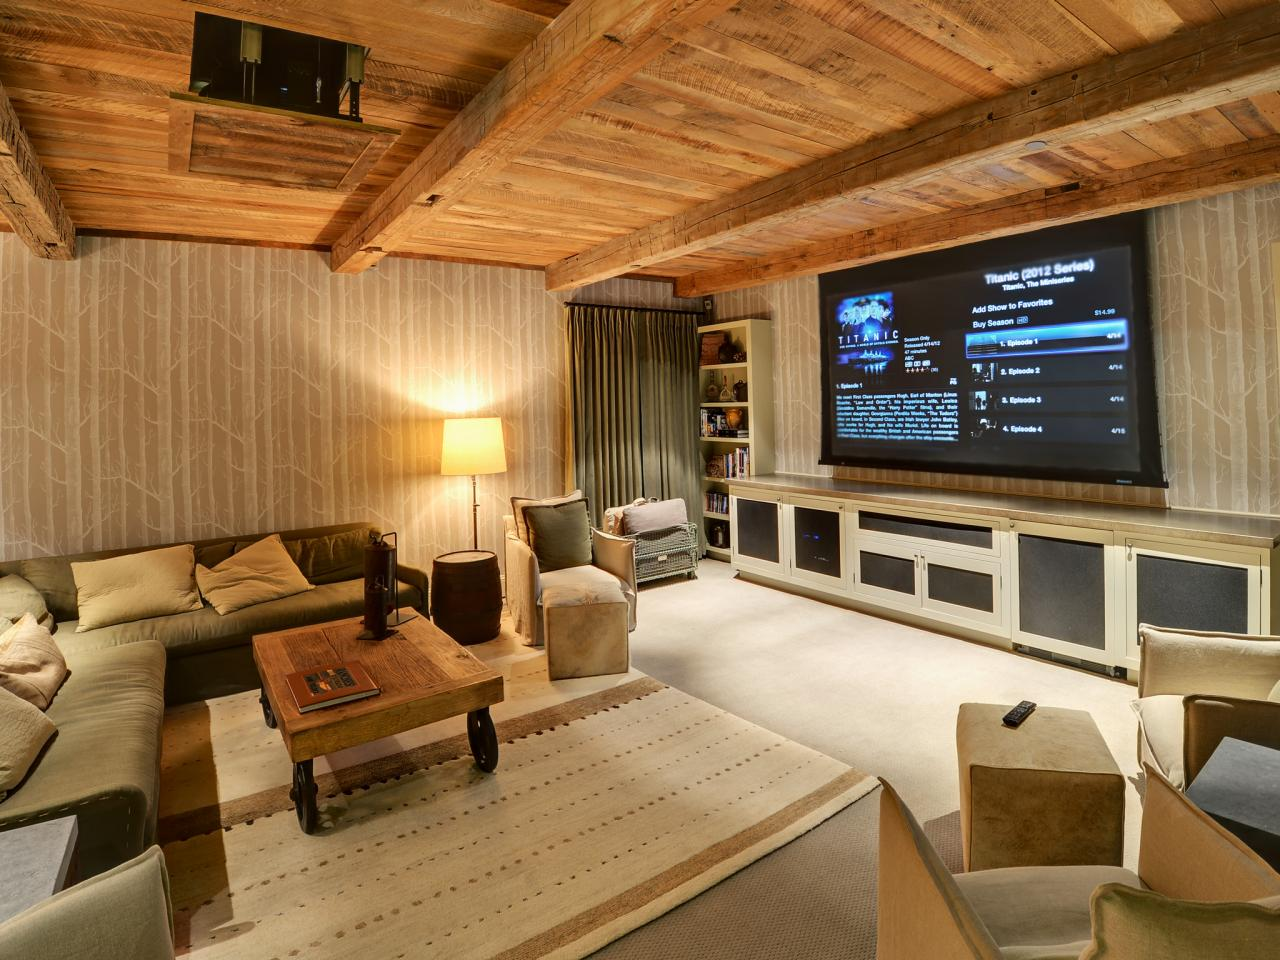 Media Room Design Ideas Pictures Options amp Tips HGTV